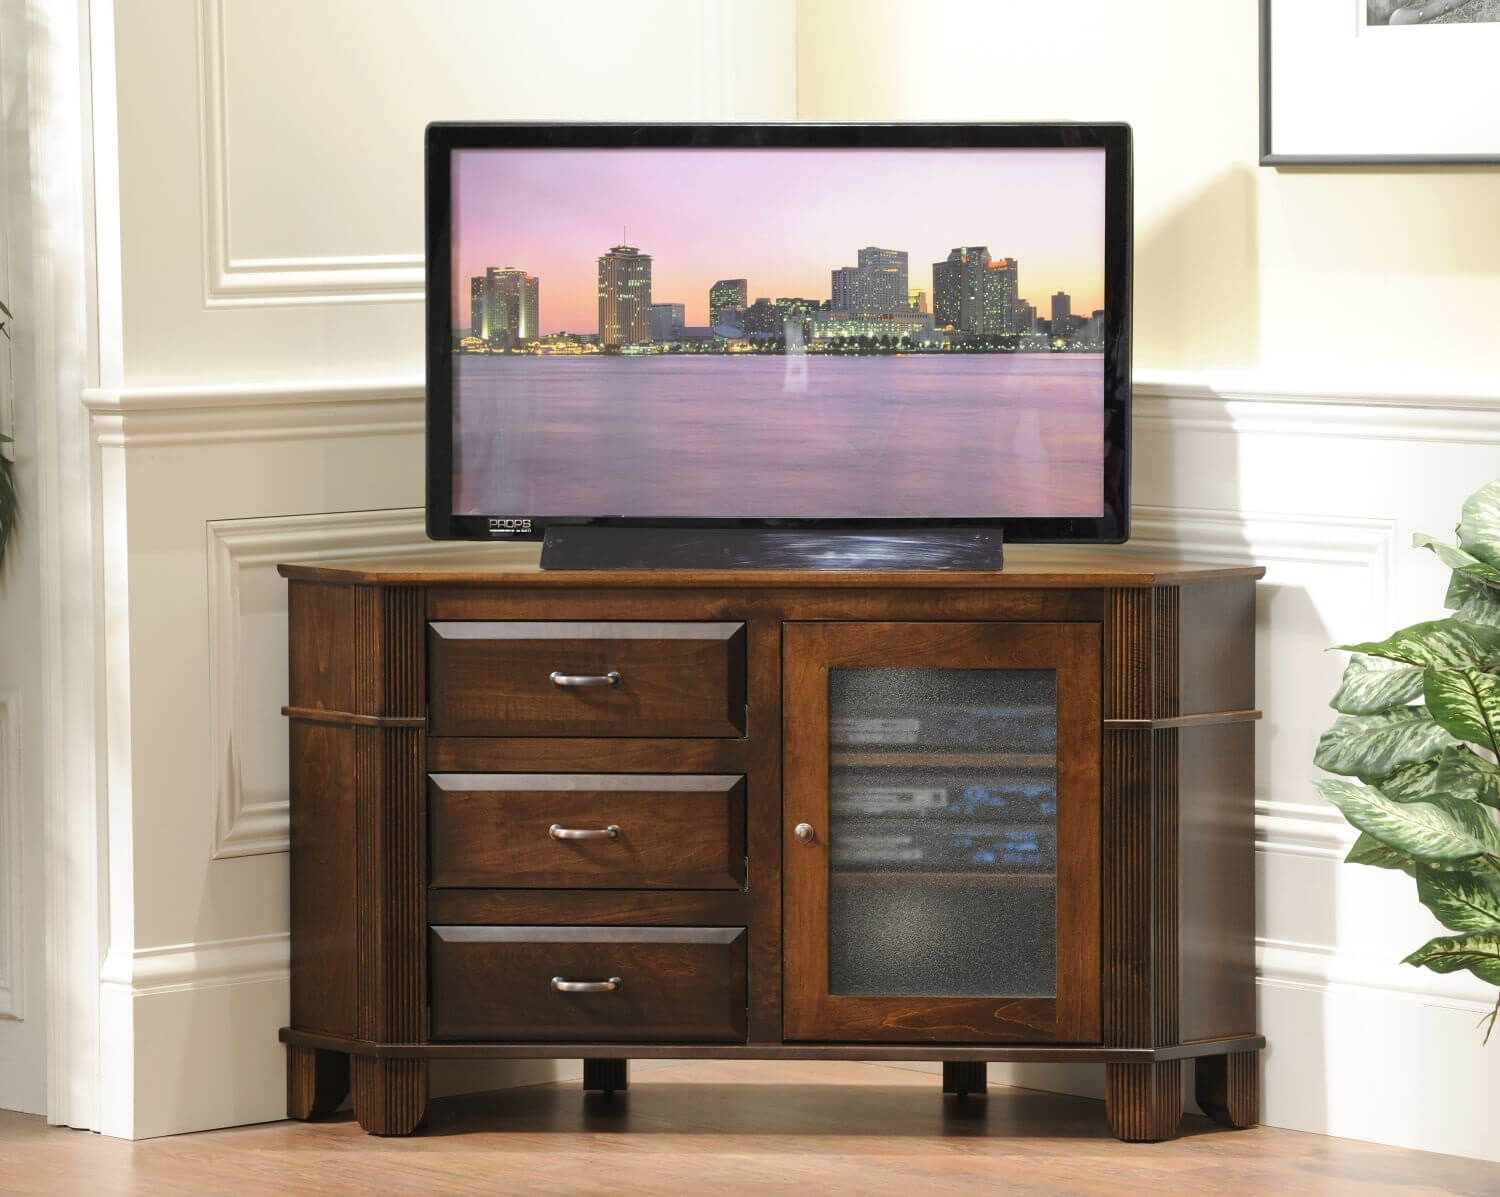 West point tv stand with tv